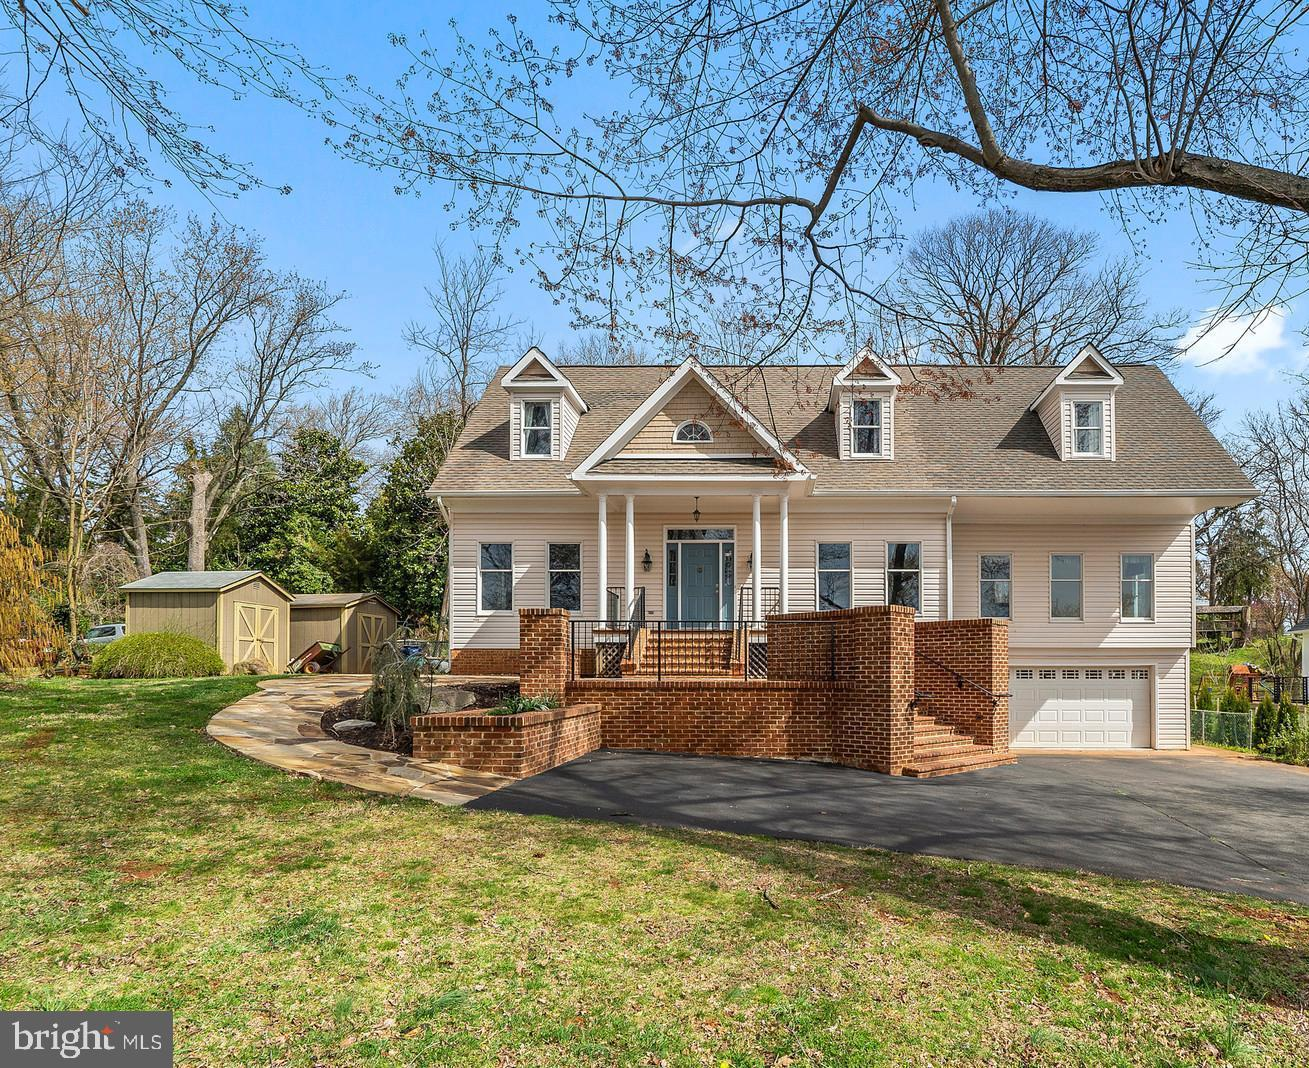 Enjoy walking from your home  downtown to the restaurants, shopping, brewery and the Greenway where you can walk or bike trails.  Move in ready!    Flexible floor plan offers  multiple spaces that can be utilized  as home office, designated exercise room with rubber gym flooring,  playrooms,  hobby,  spacious is an understatement.   From the inviting front brick steps and entryway to the gourmet kitchen with upgrades galore not to mention  heated flooring and the color kinetics lightening and  wired sound speakers to an oversized wrapped deck, patio and  a stone waterfall fish pond.   Owners suite  is located on the main level along with another bedroom and full bath on main level as well.  Full easy flow living experience offering exuberant spaces both in and out.    Owners have incorporated the art of exceptional living with the real comforts of a home.  A complete lifestyle residence for family and friends.  Total Sq Ft. 4660